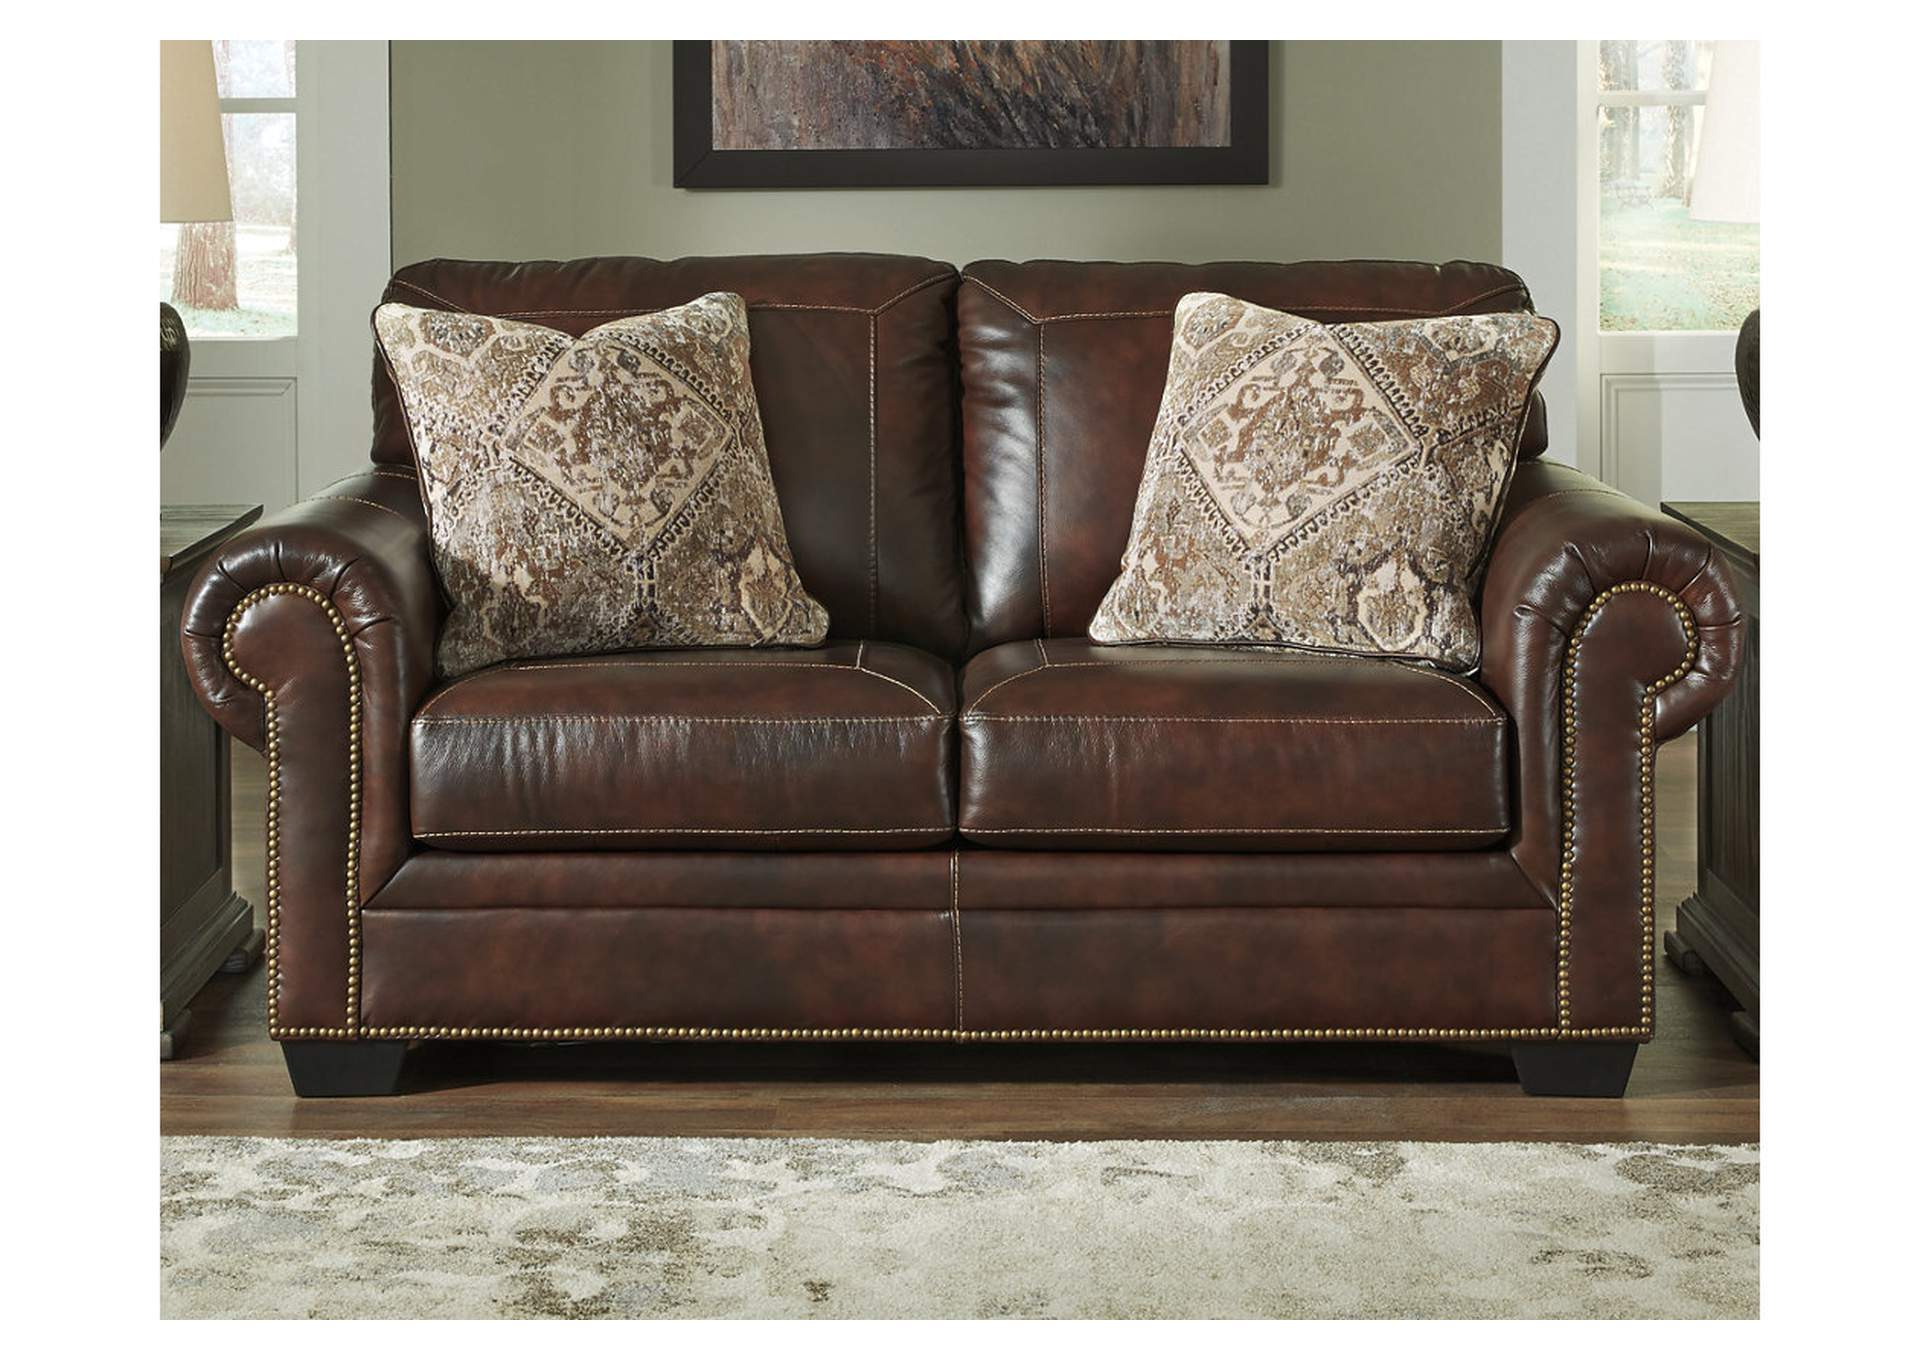 Roleson Walnut Loveseat,Signature Design By Ashley